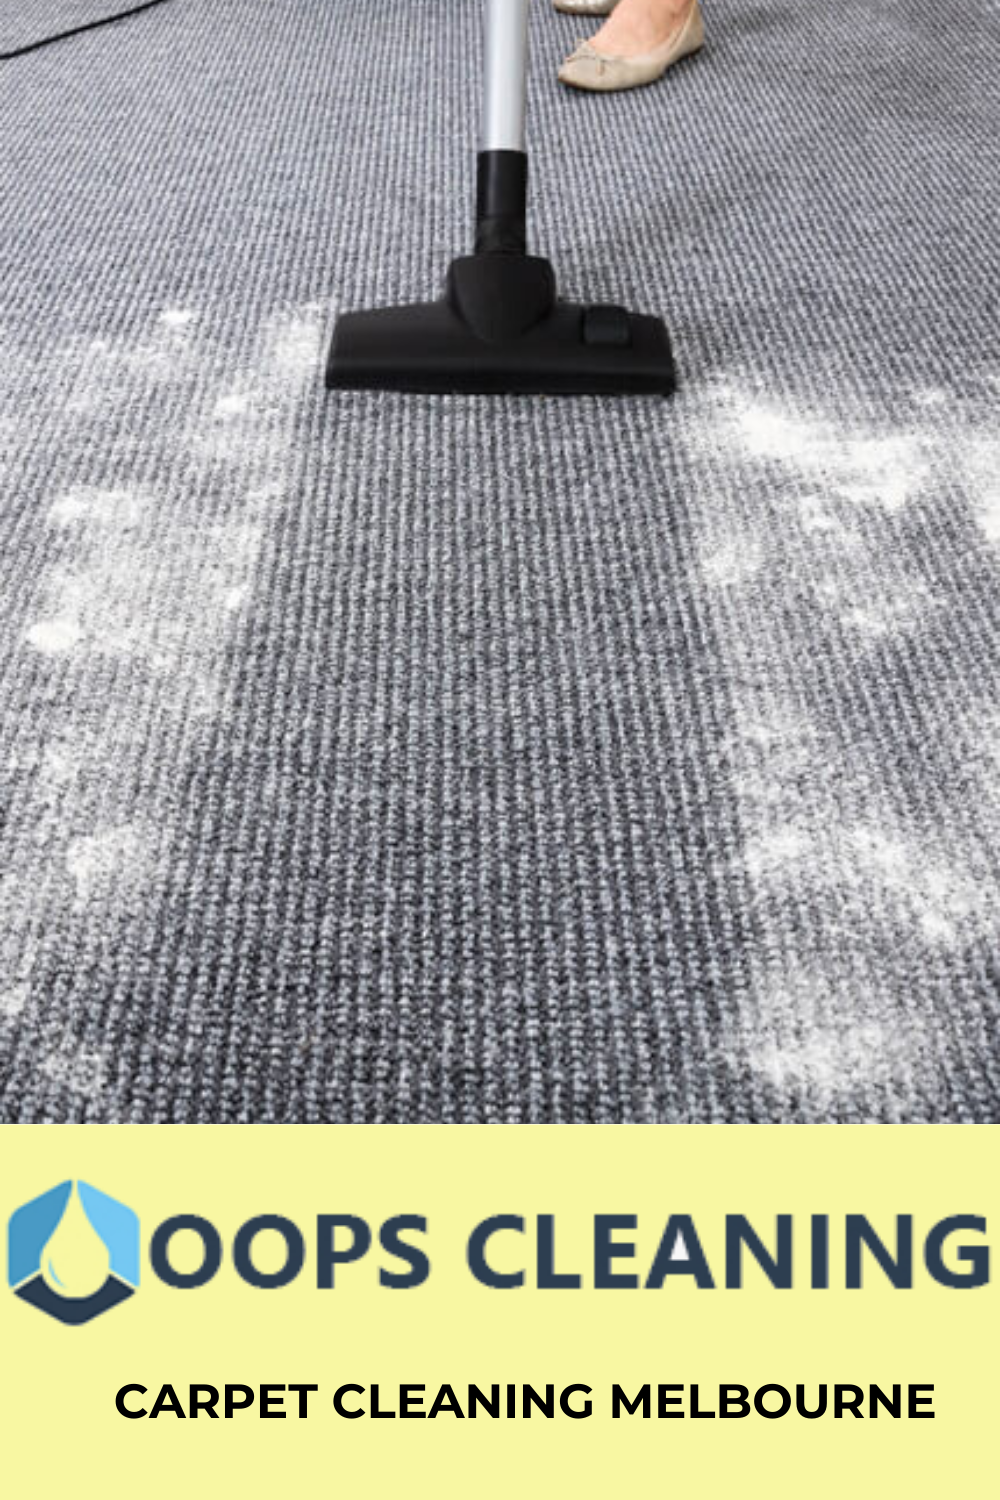 Carpet Cleaning Melbourne In 2020 How To Clean Carpet Steam Clean Carpet Carpet Cleaning Hacks